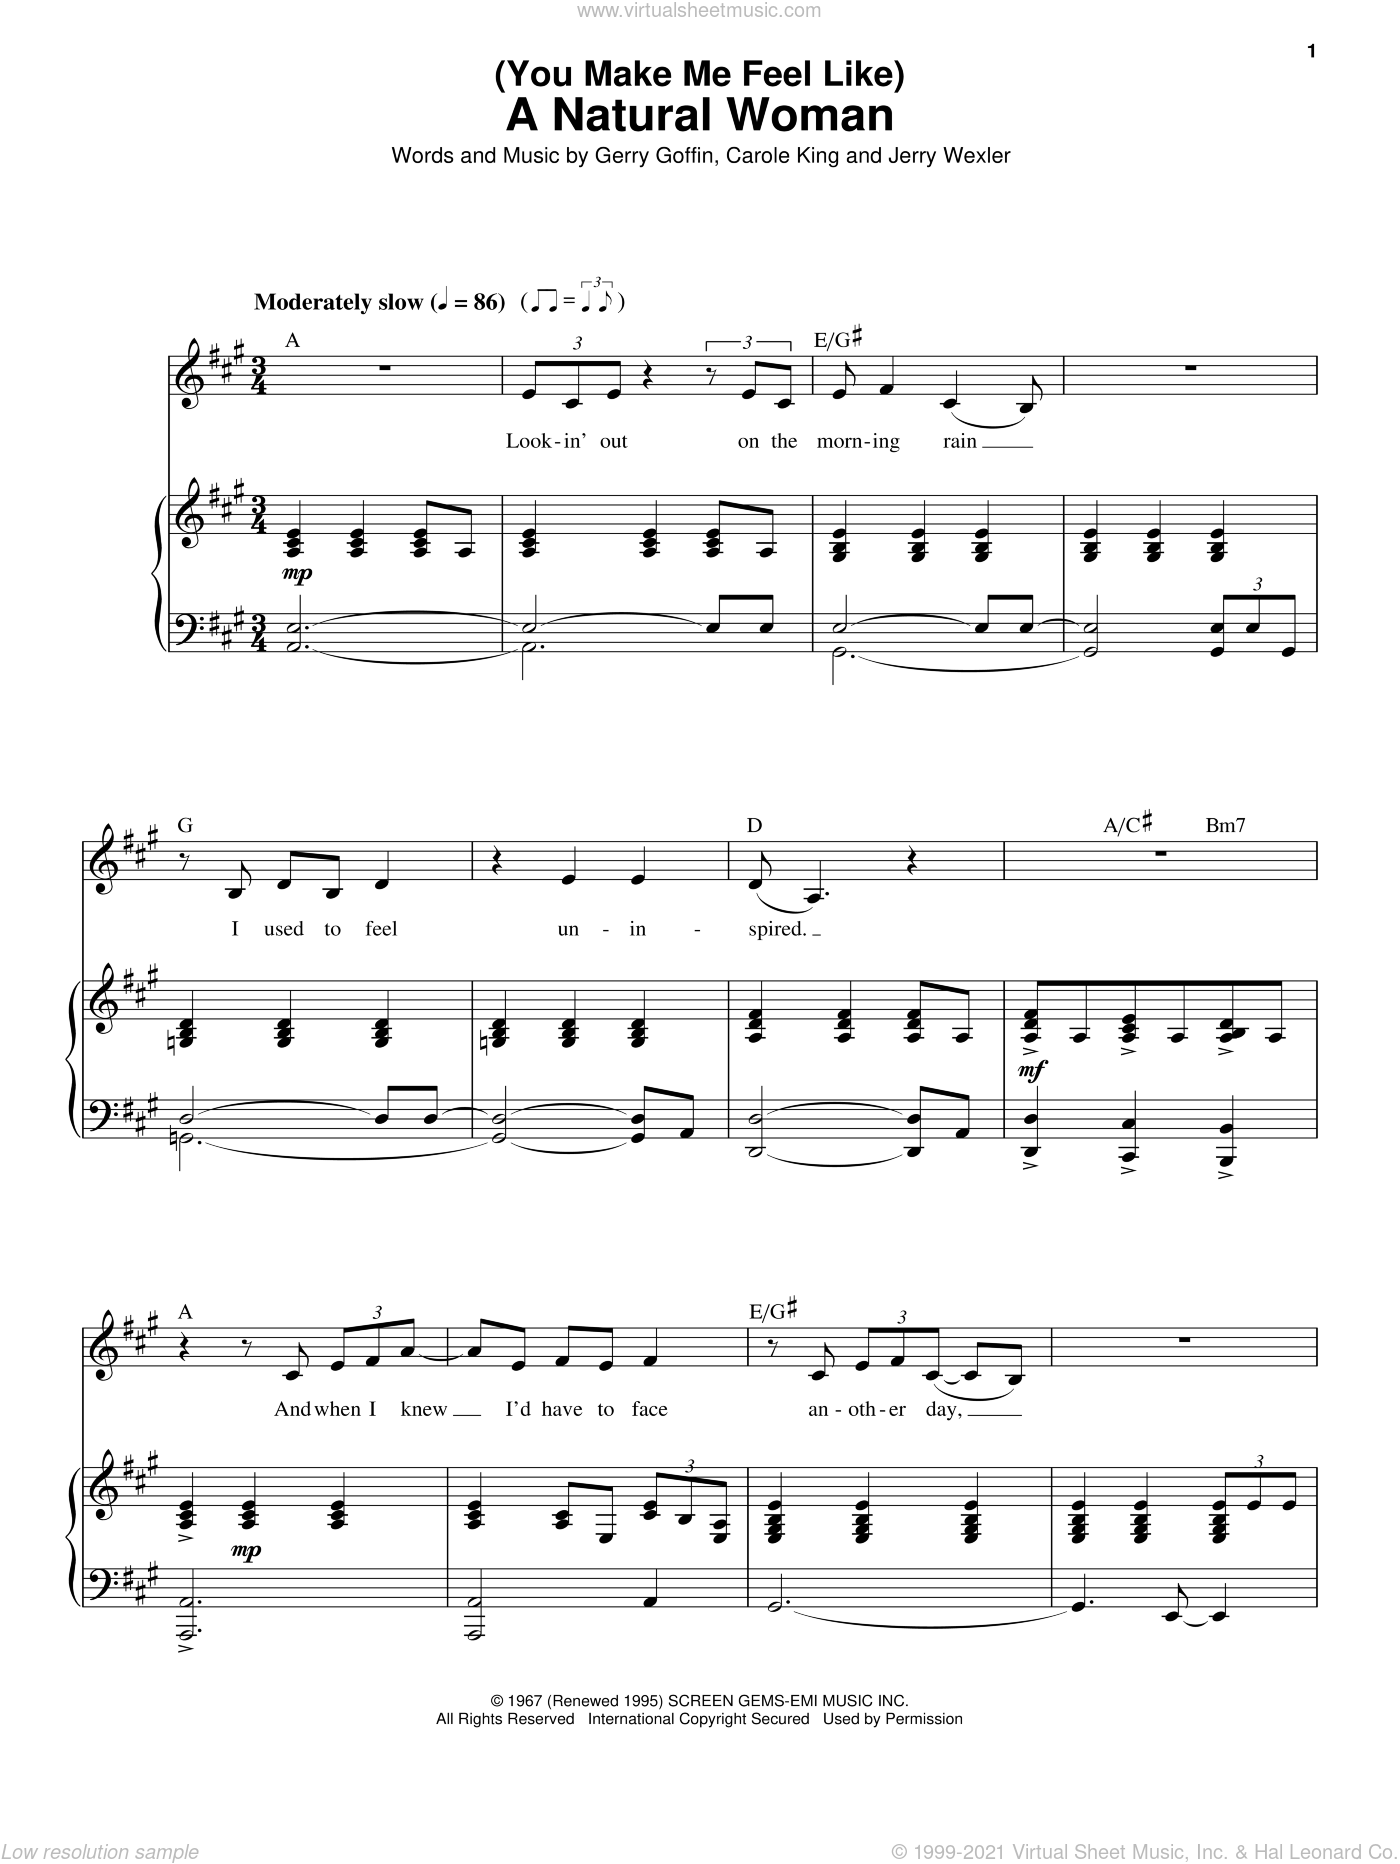 (You Make Me Feel Like) A Natural Woman sheet music for voice and piano by Carole King, Aretha Franklin and Gerry Goffin, intermediate. Score Image Preview.